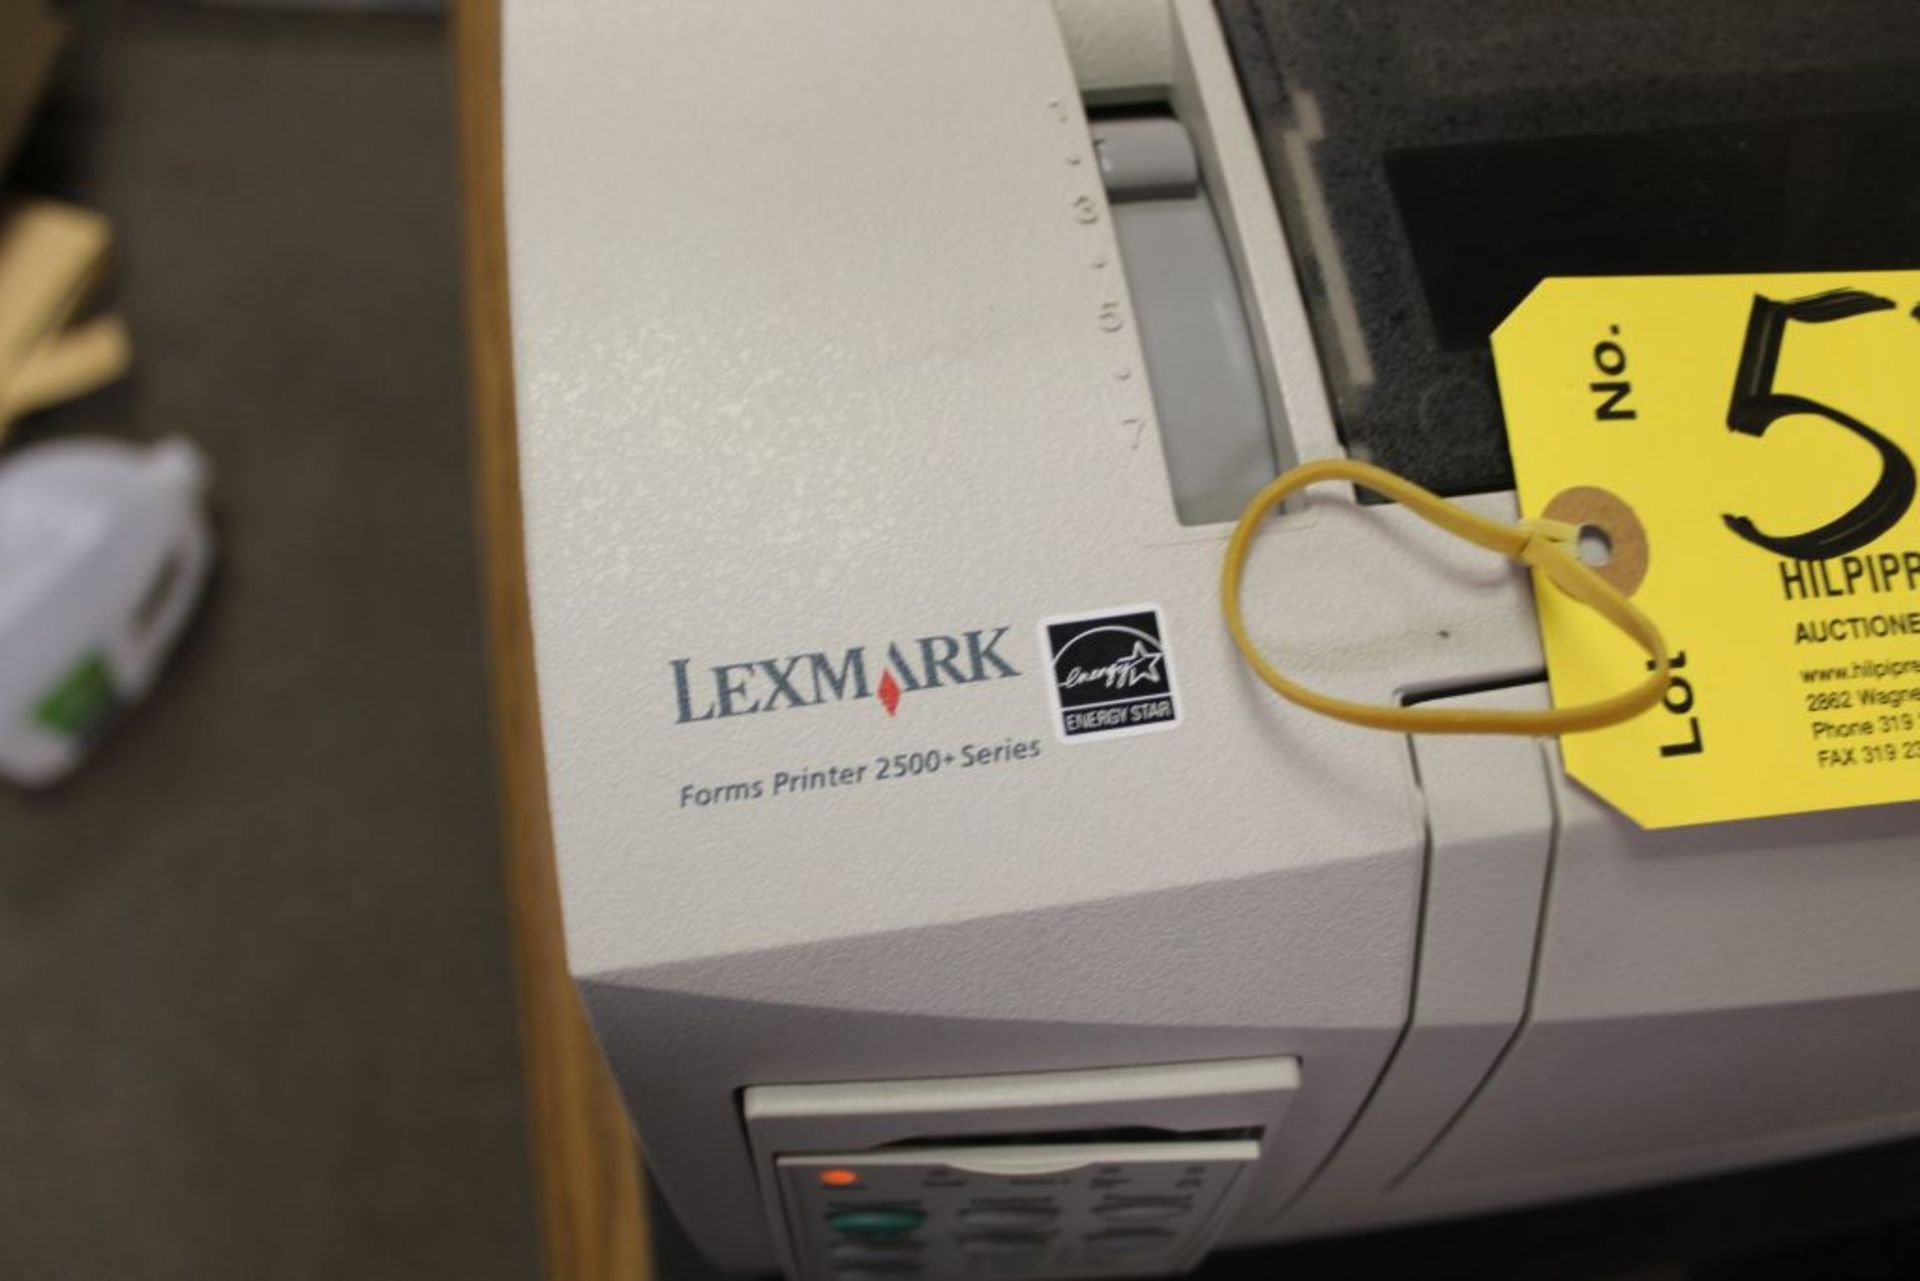 Lot 534 - Lexmark 2500 printer, with cabinet.